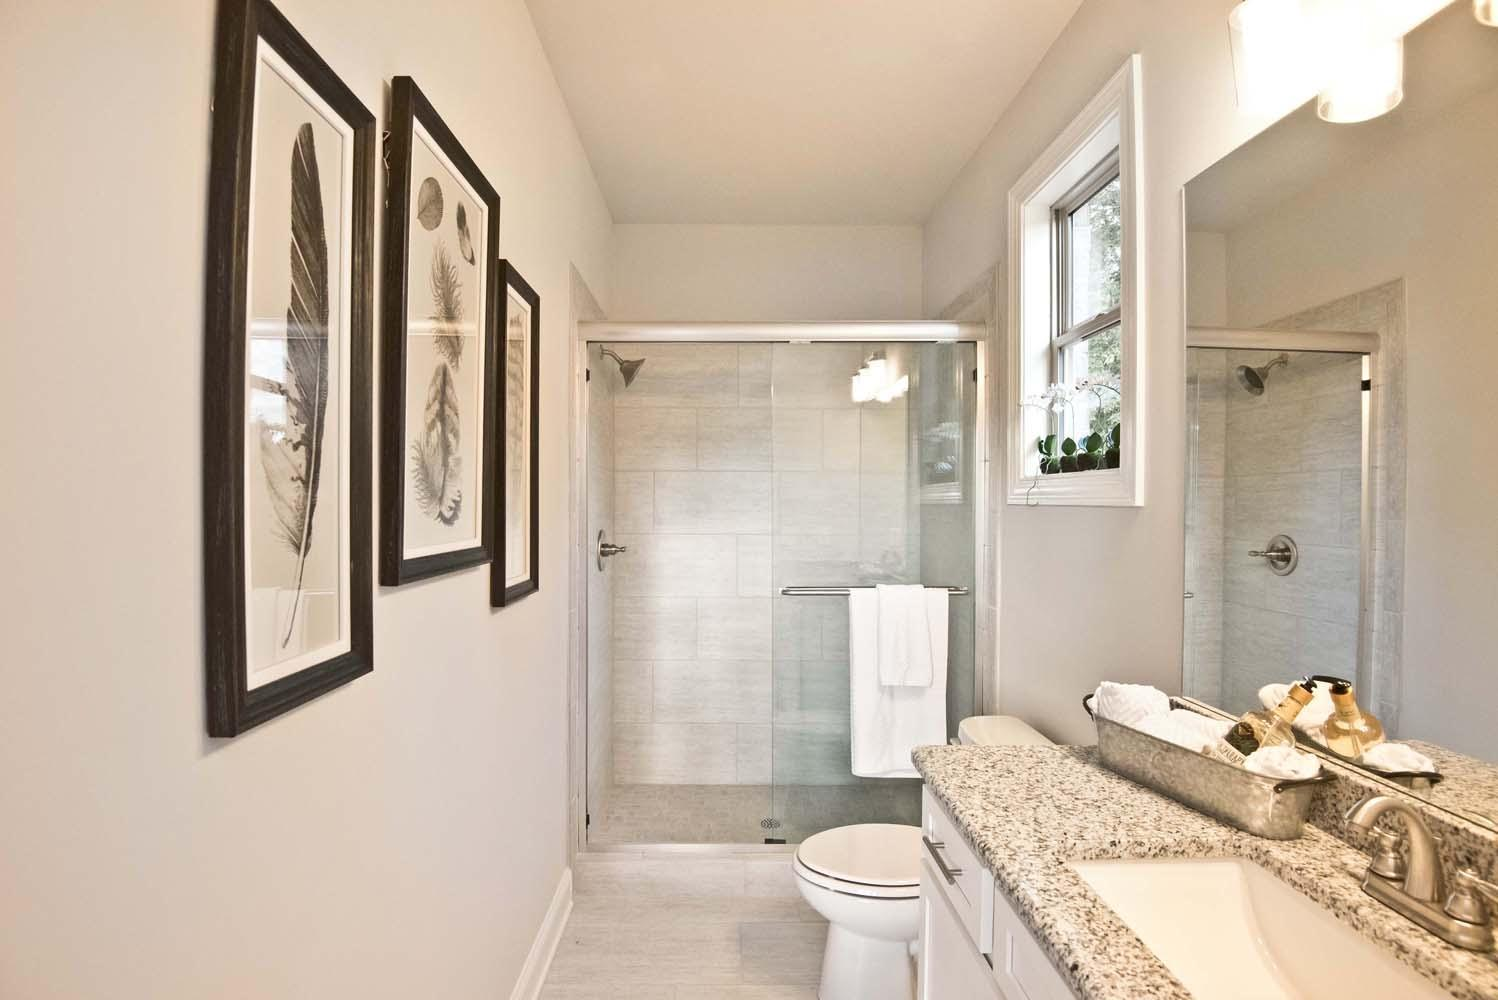 Bathroom featured in the Barkley By Chafin Communities in Atlanta, GA